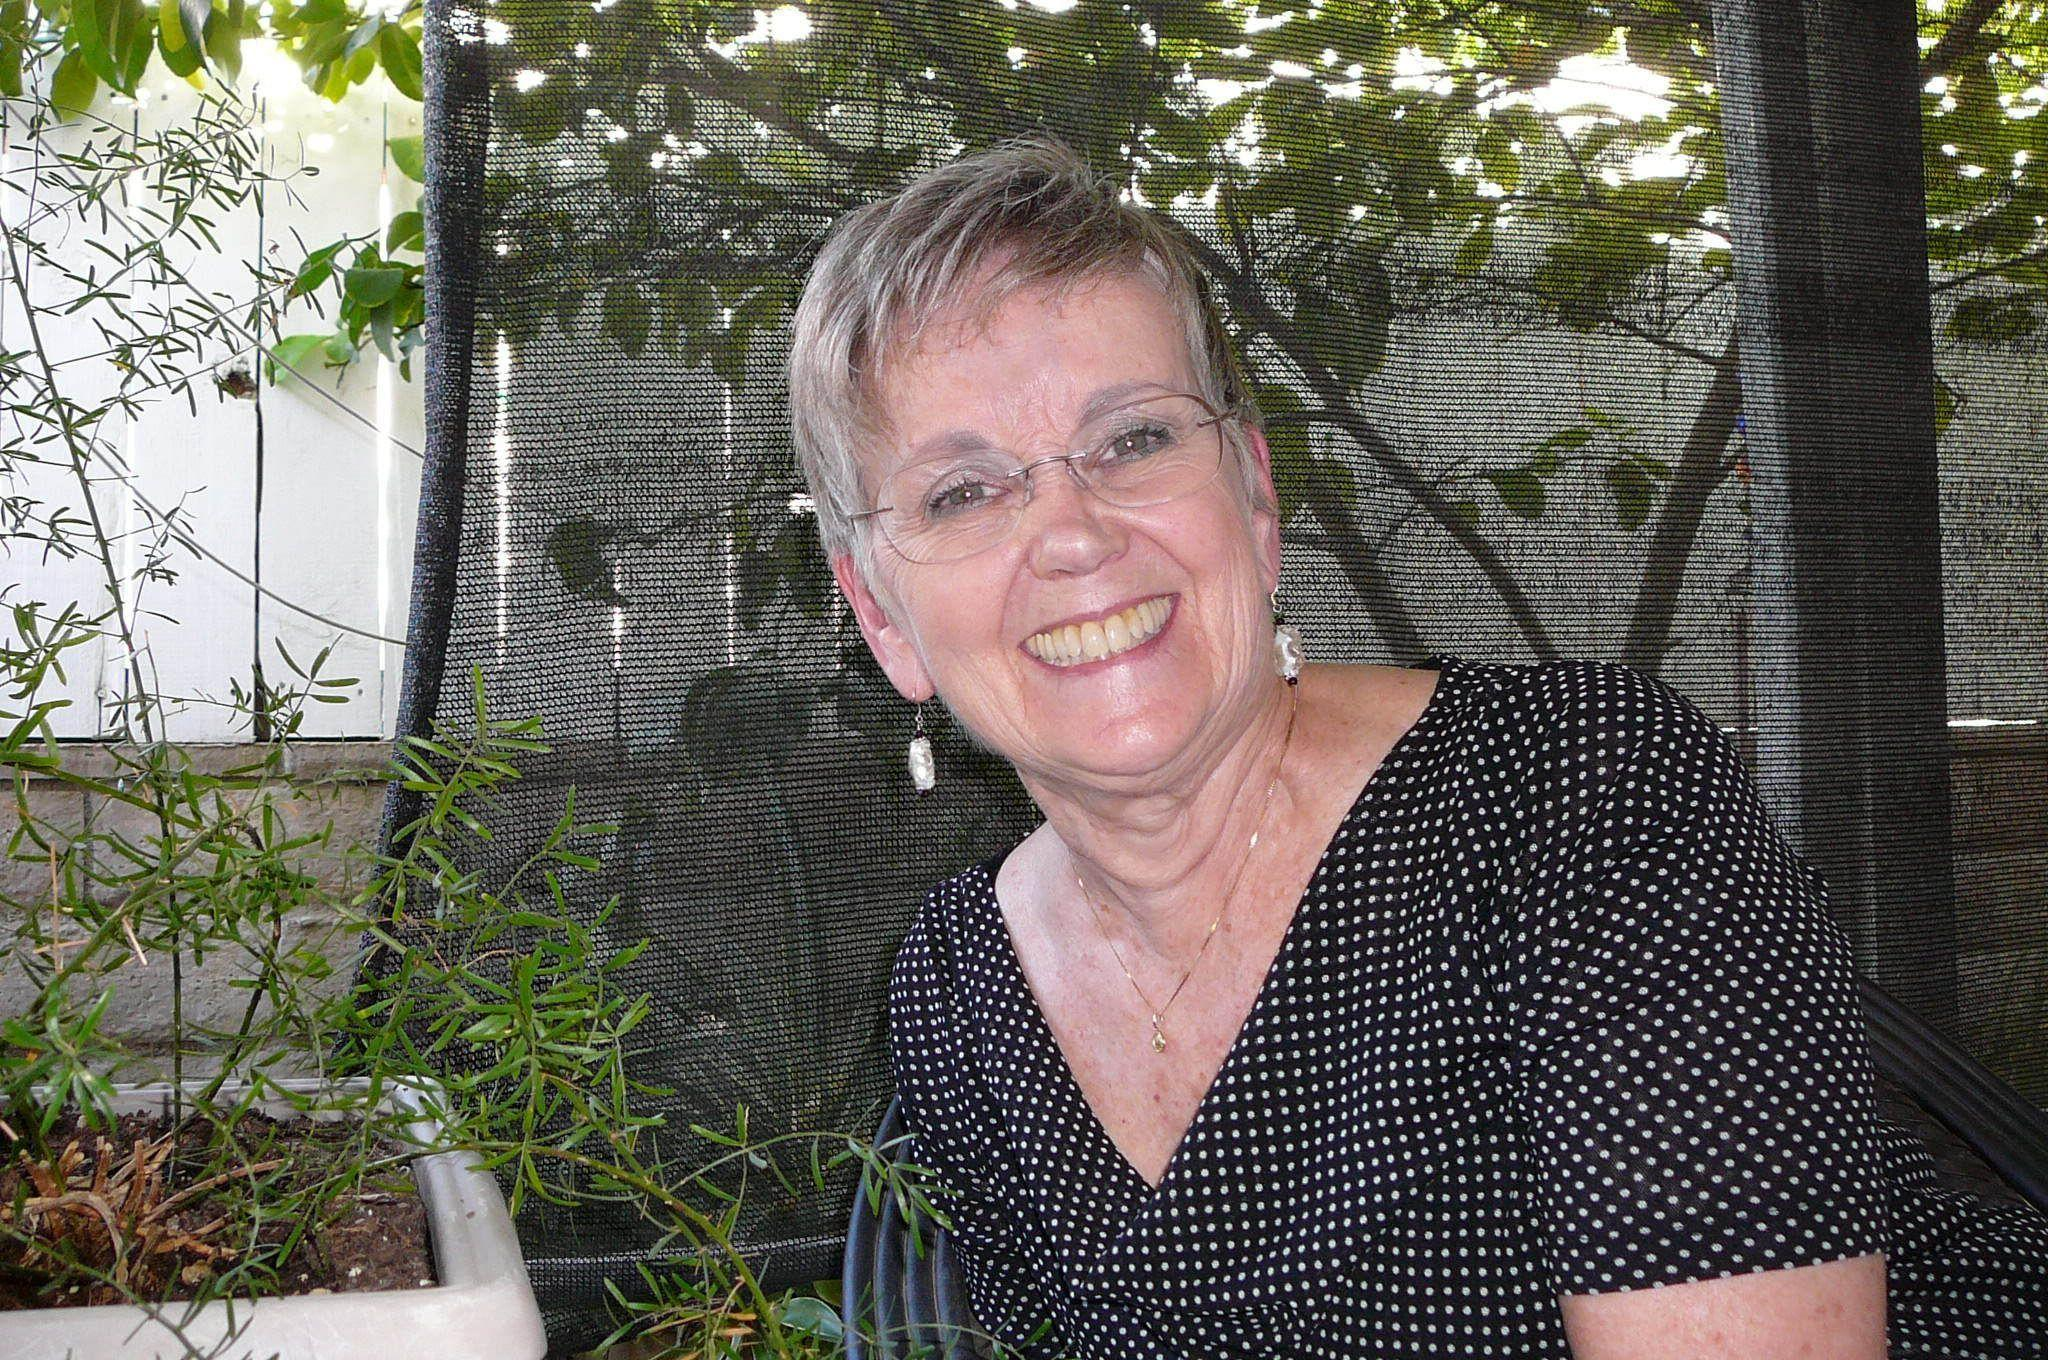 princess anne singles over 50 Dating over 50 586 likes wwwboomerscupidcom focuses on singles over 50 years of age, and does not allow members under the age of 30no games,just.